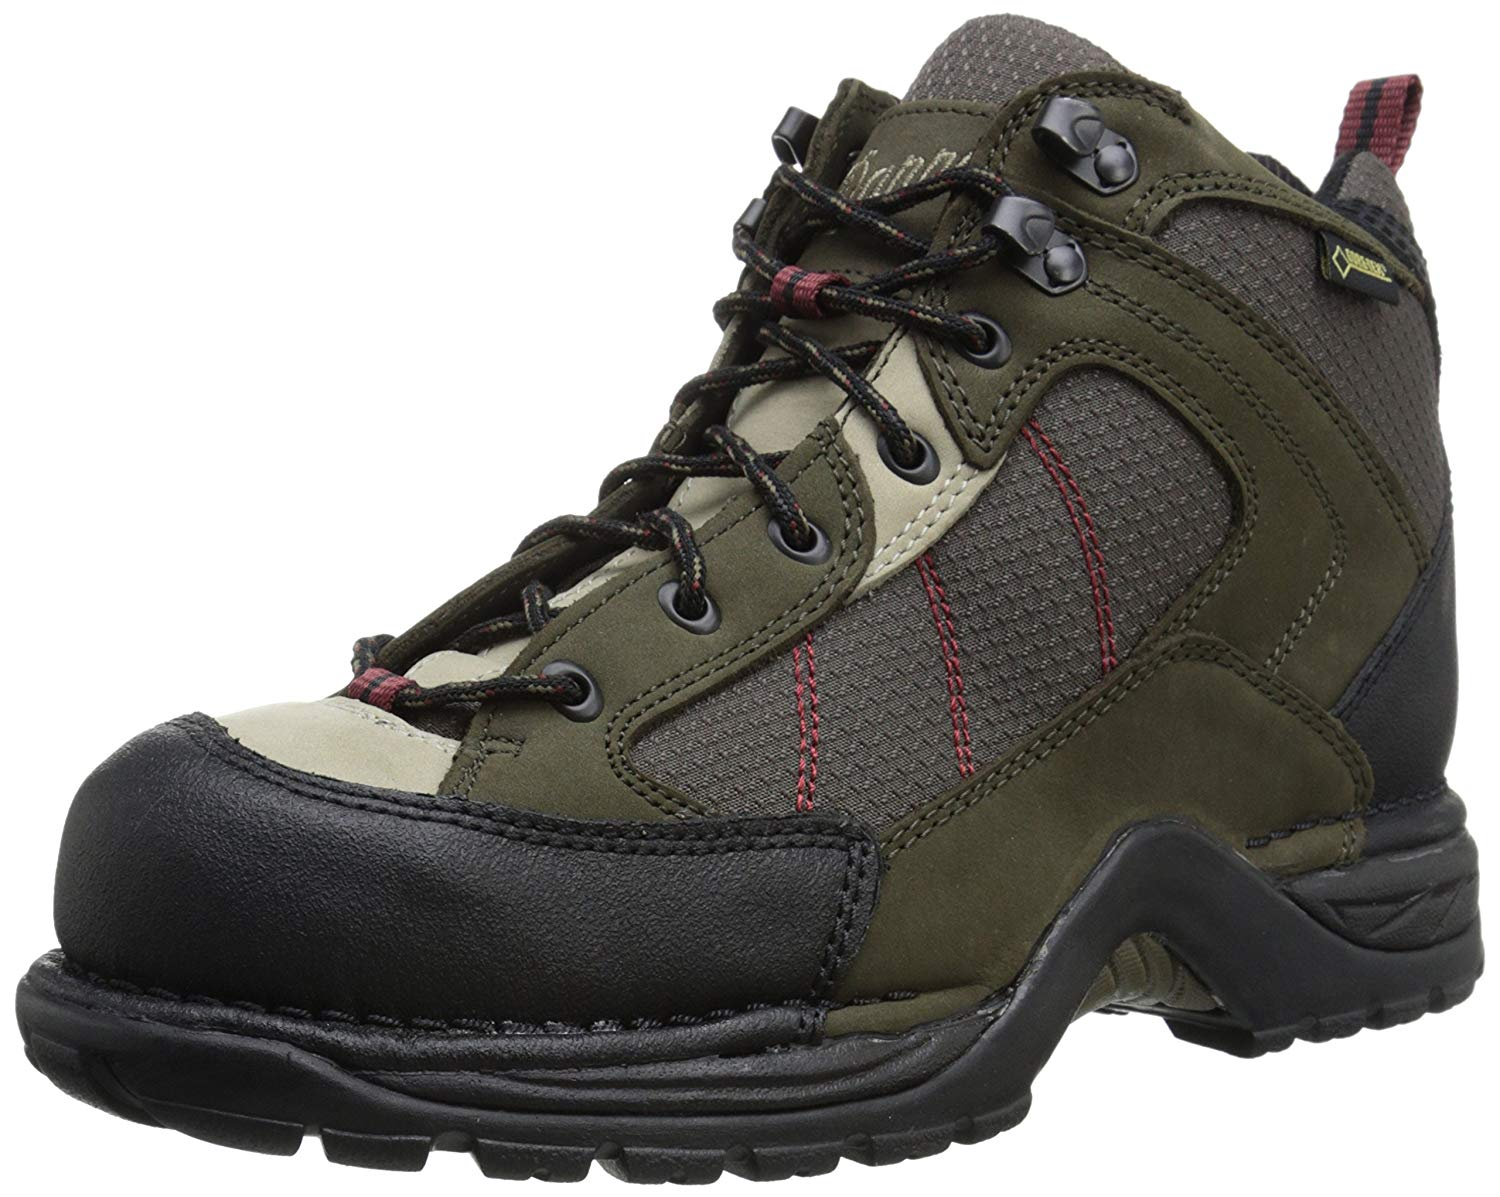 Top 10 Best Hiking Boots Under 100 For Men & Women 2020 Reviews 5